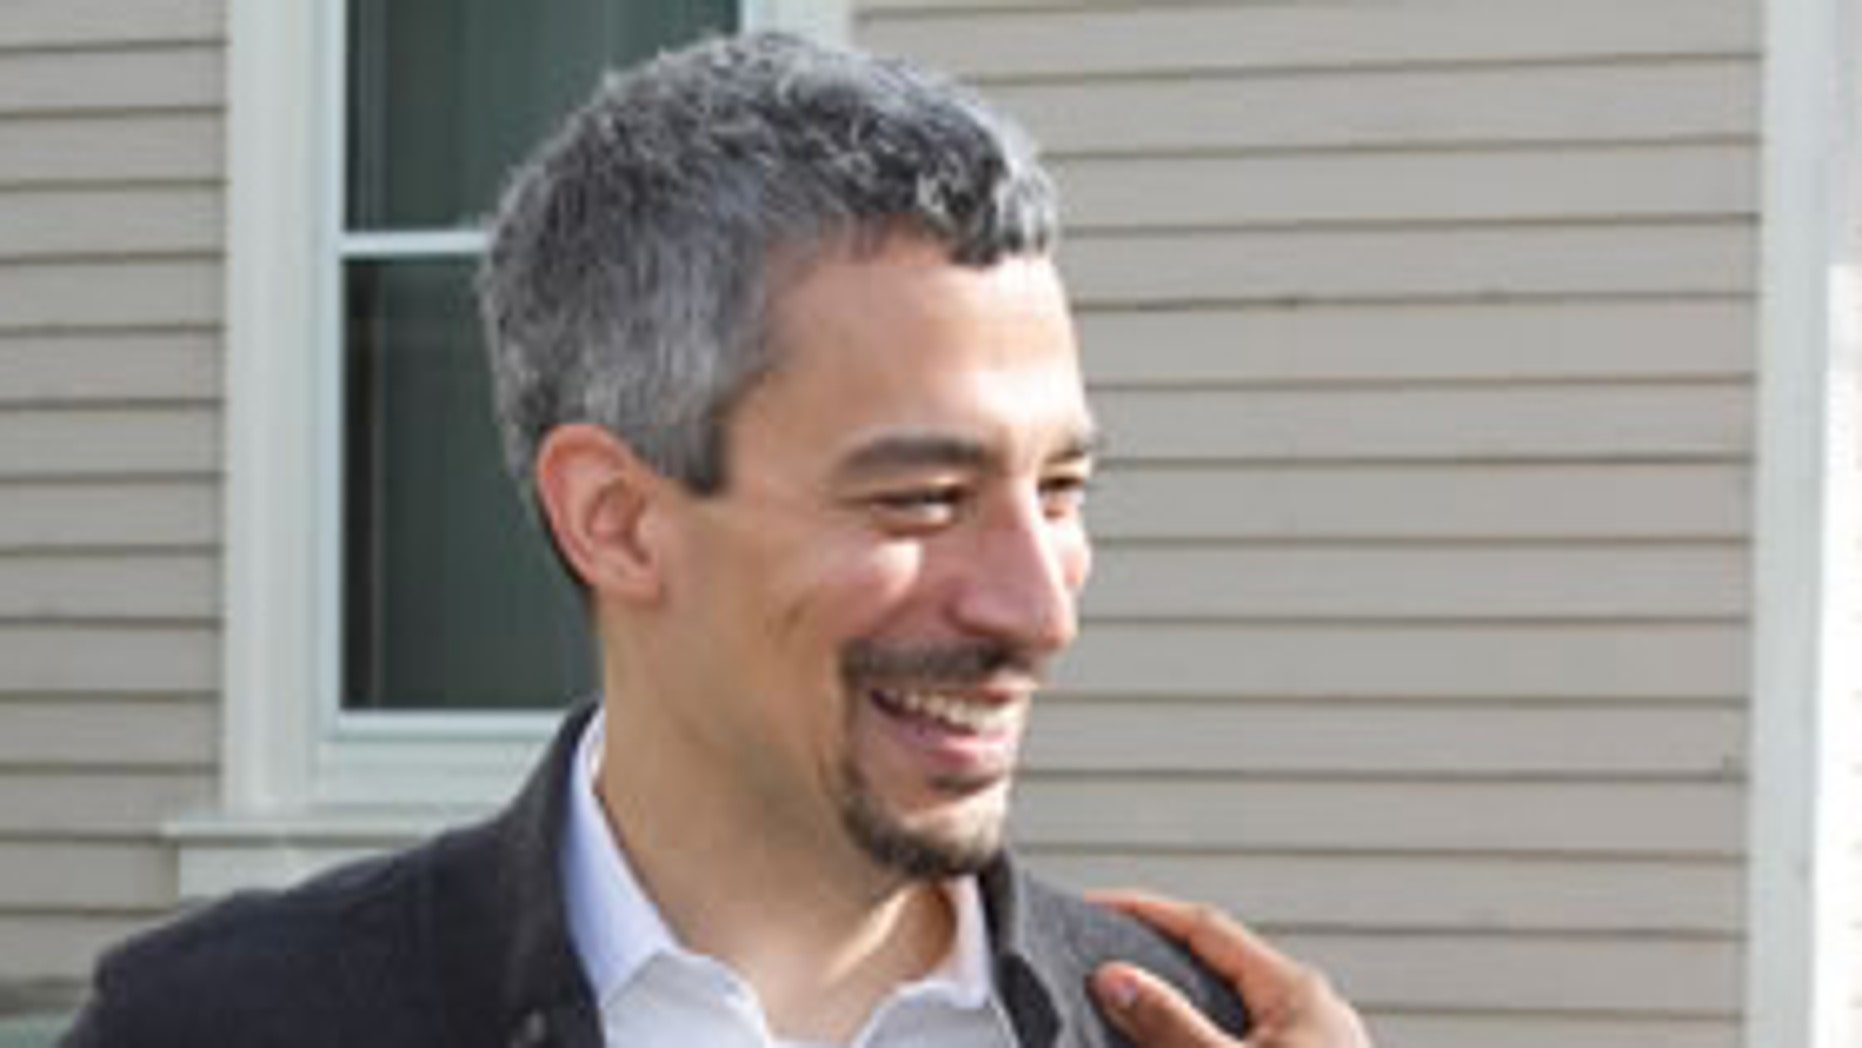 Henry Fernandez is seeking the Democratic nomination for New Haven mayor in this November's elections.